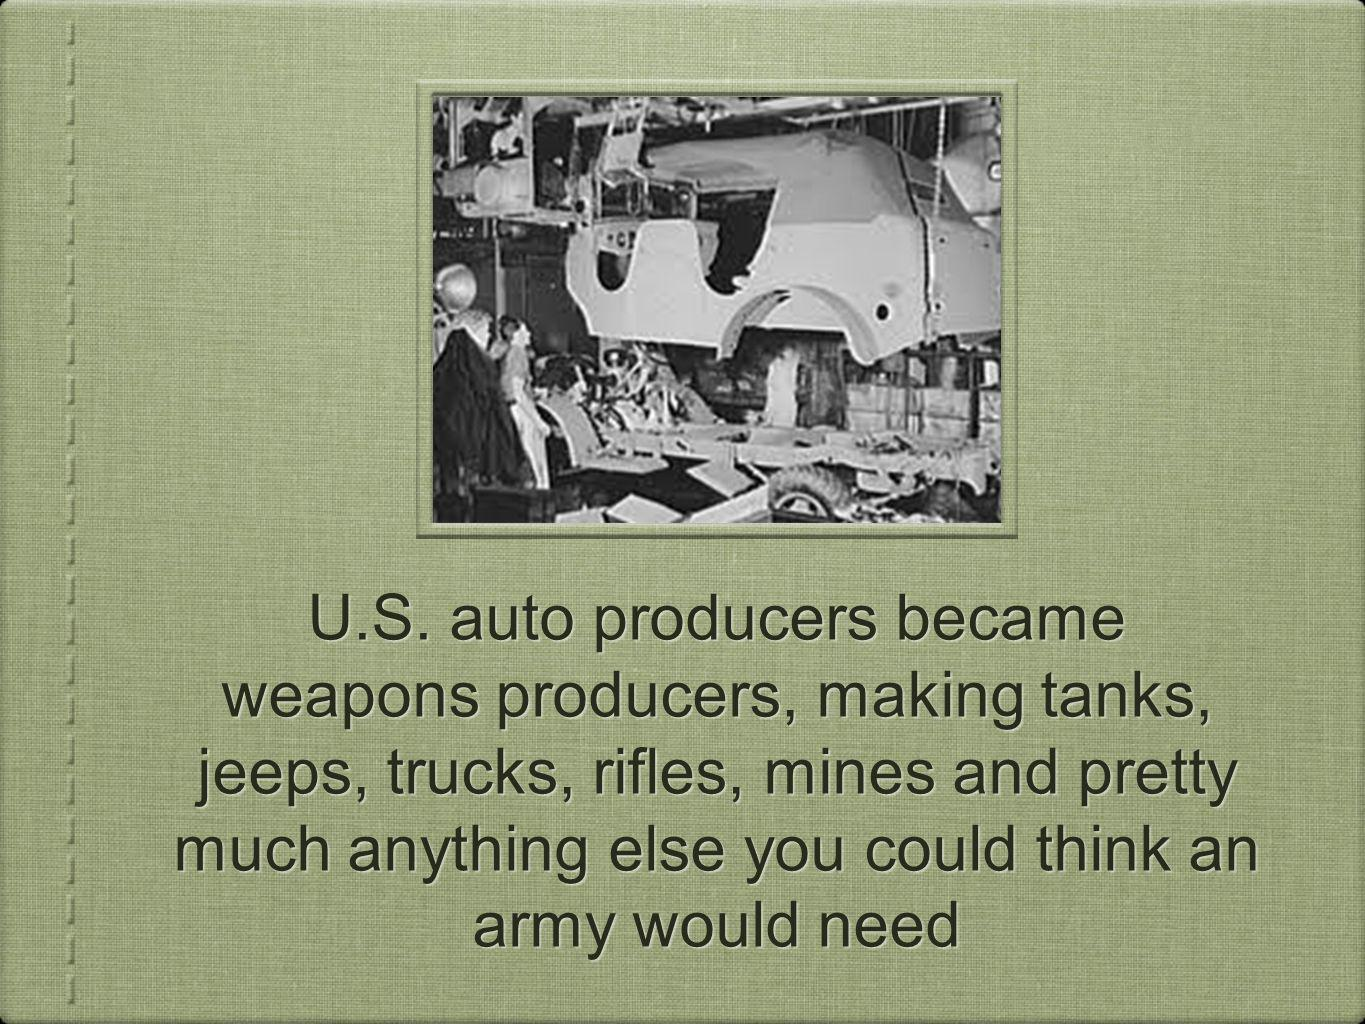 U.S. auto producers became weapons producers, making tanks, jeeps, trucks, rifles, mines and pretty much anything else you could think an army would n